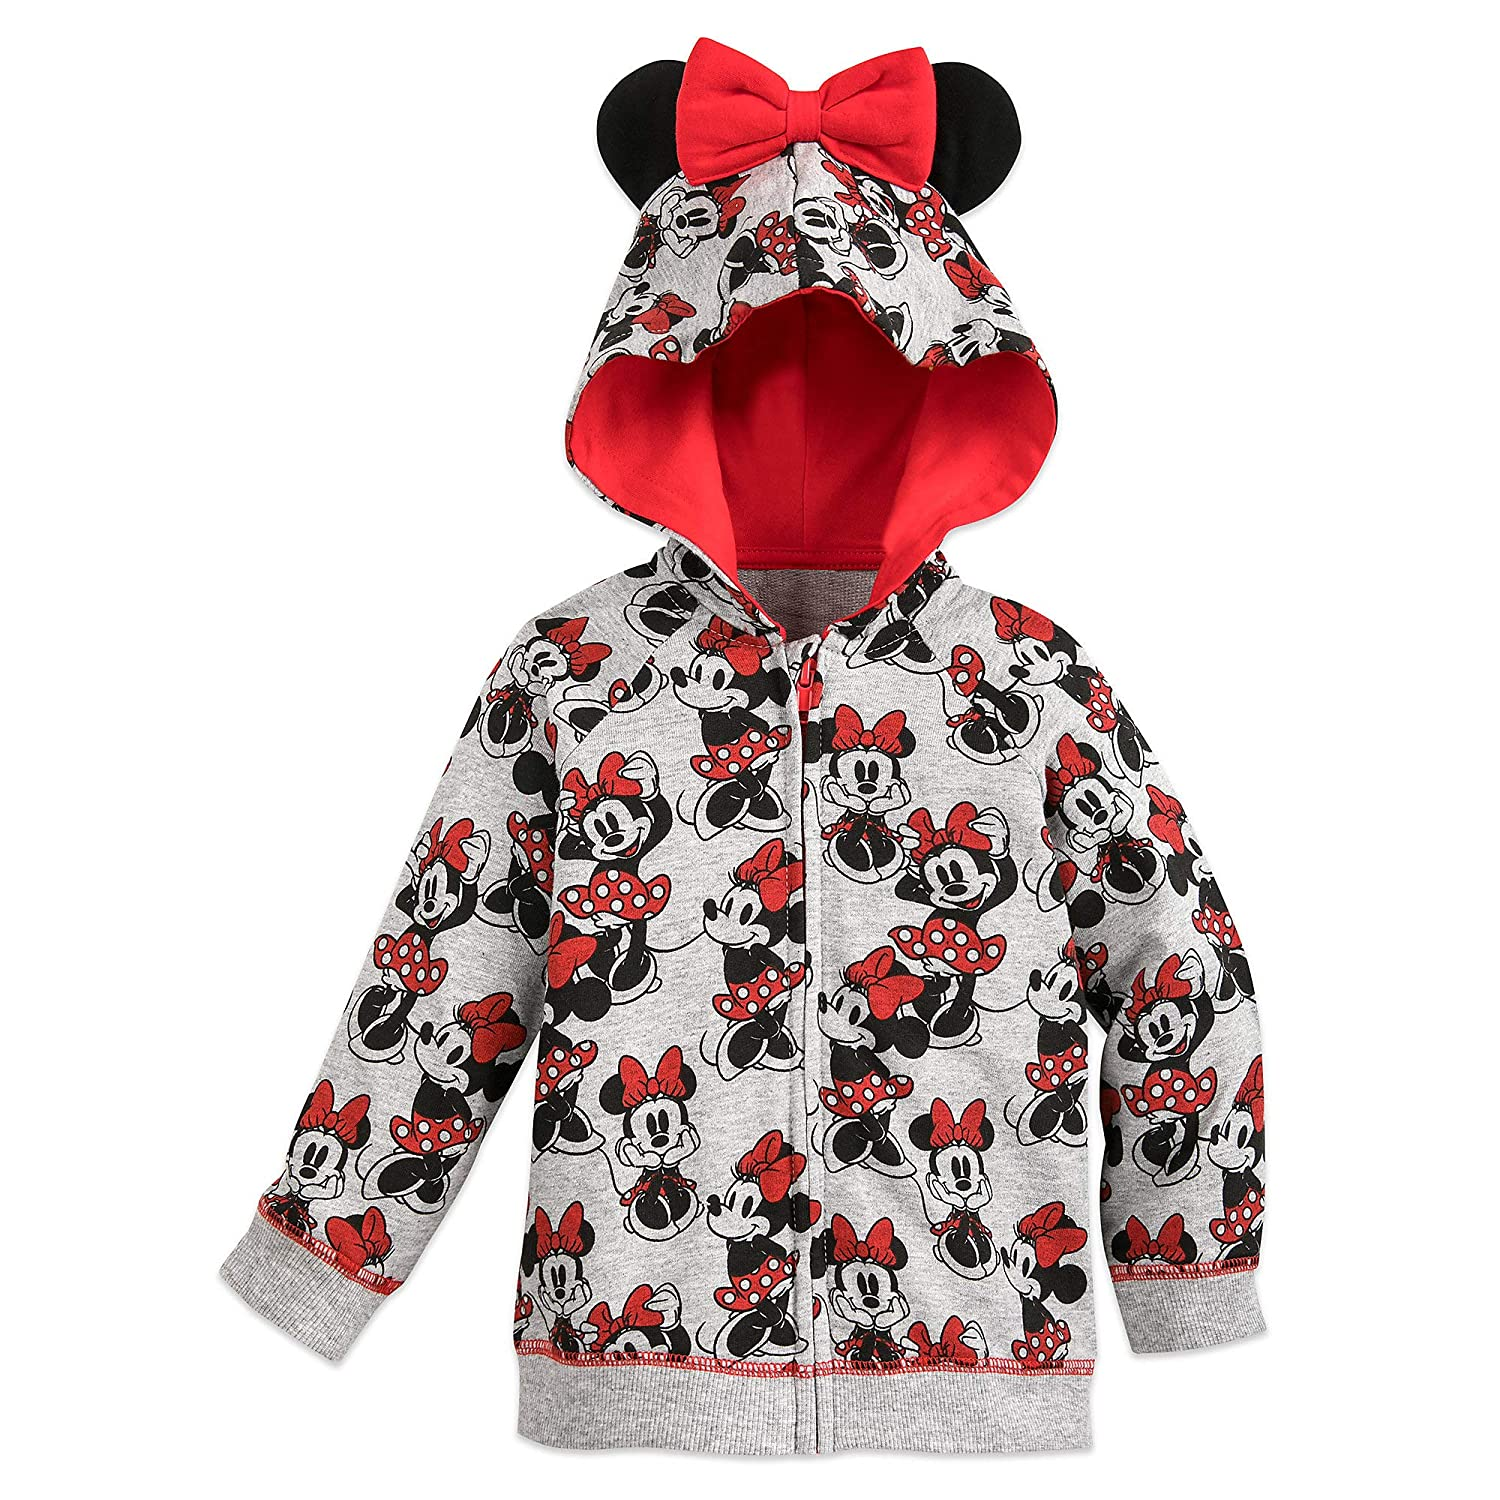 Disney Minnie Mouse Hoodie for Baby Size 0-3 MO Multi